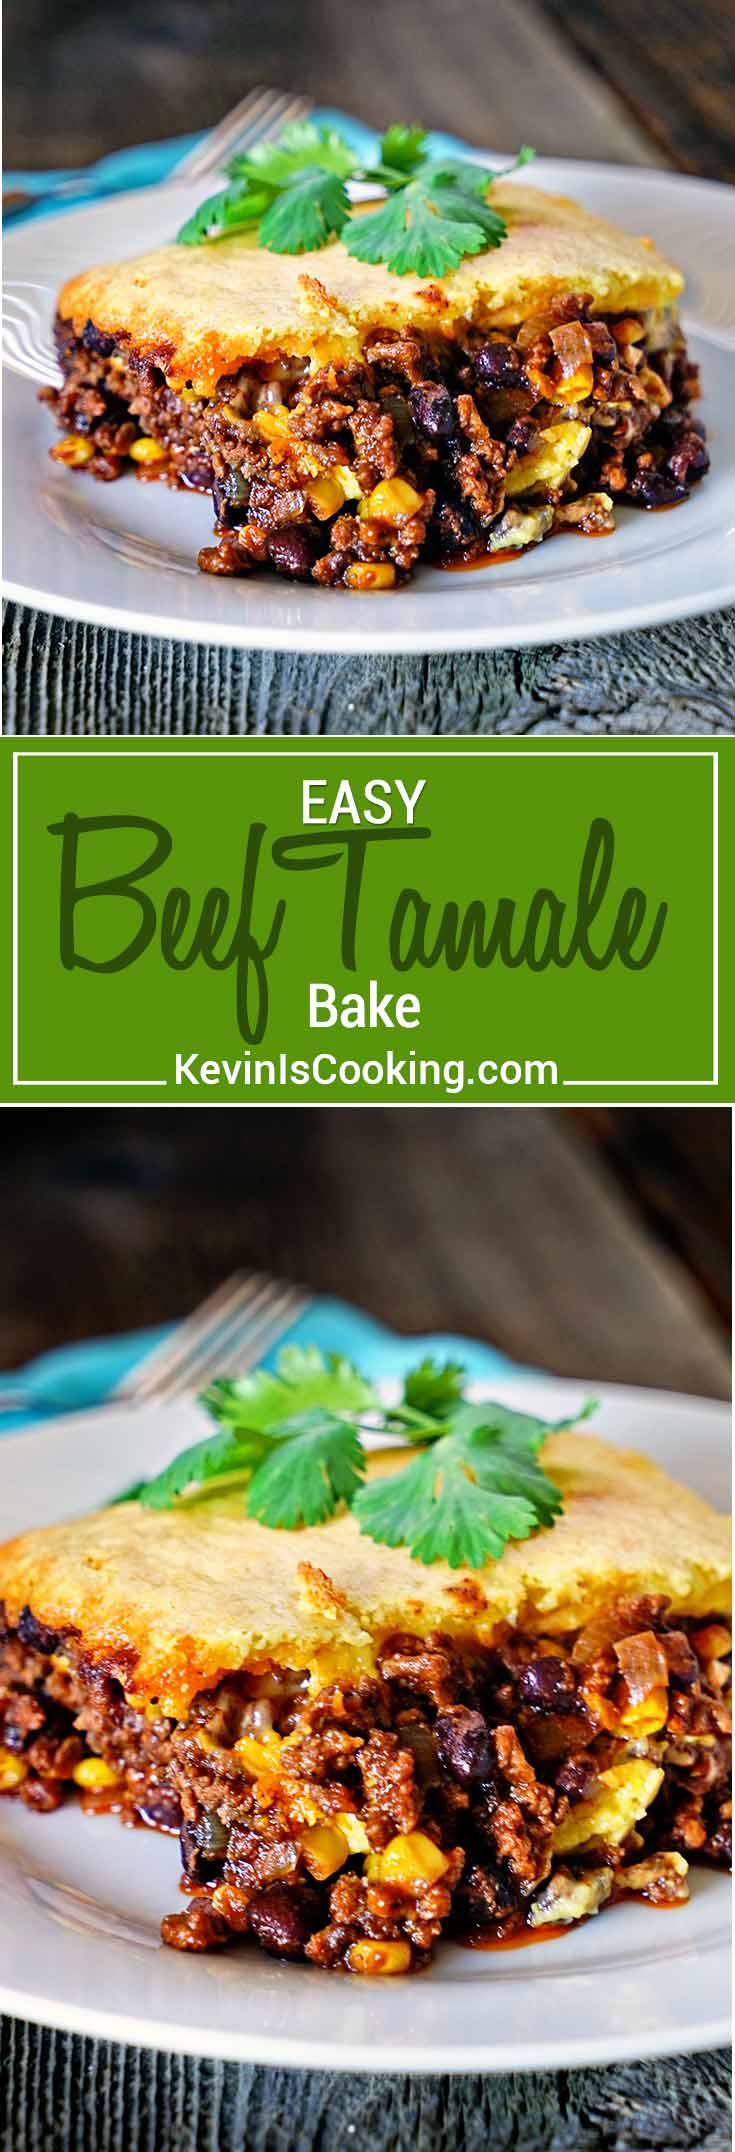 Easy Tamale Bake - a quick and easy meal made from ground beef, spices, corn and beans all topped with a cornbread batter that's baked and ready in minutes.